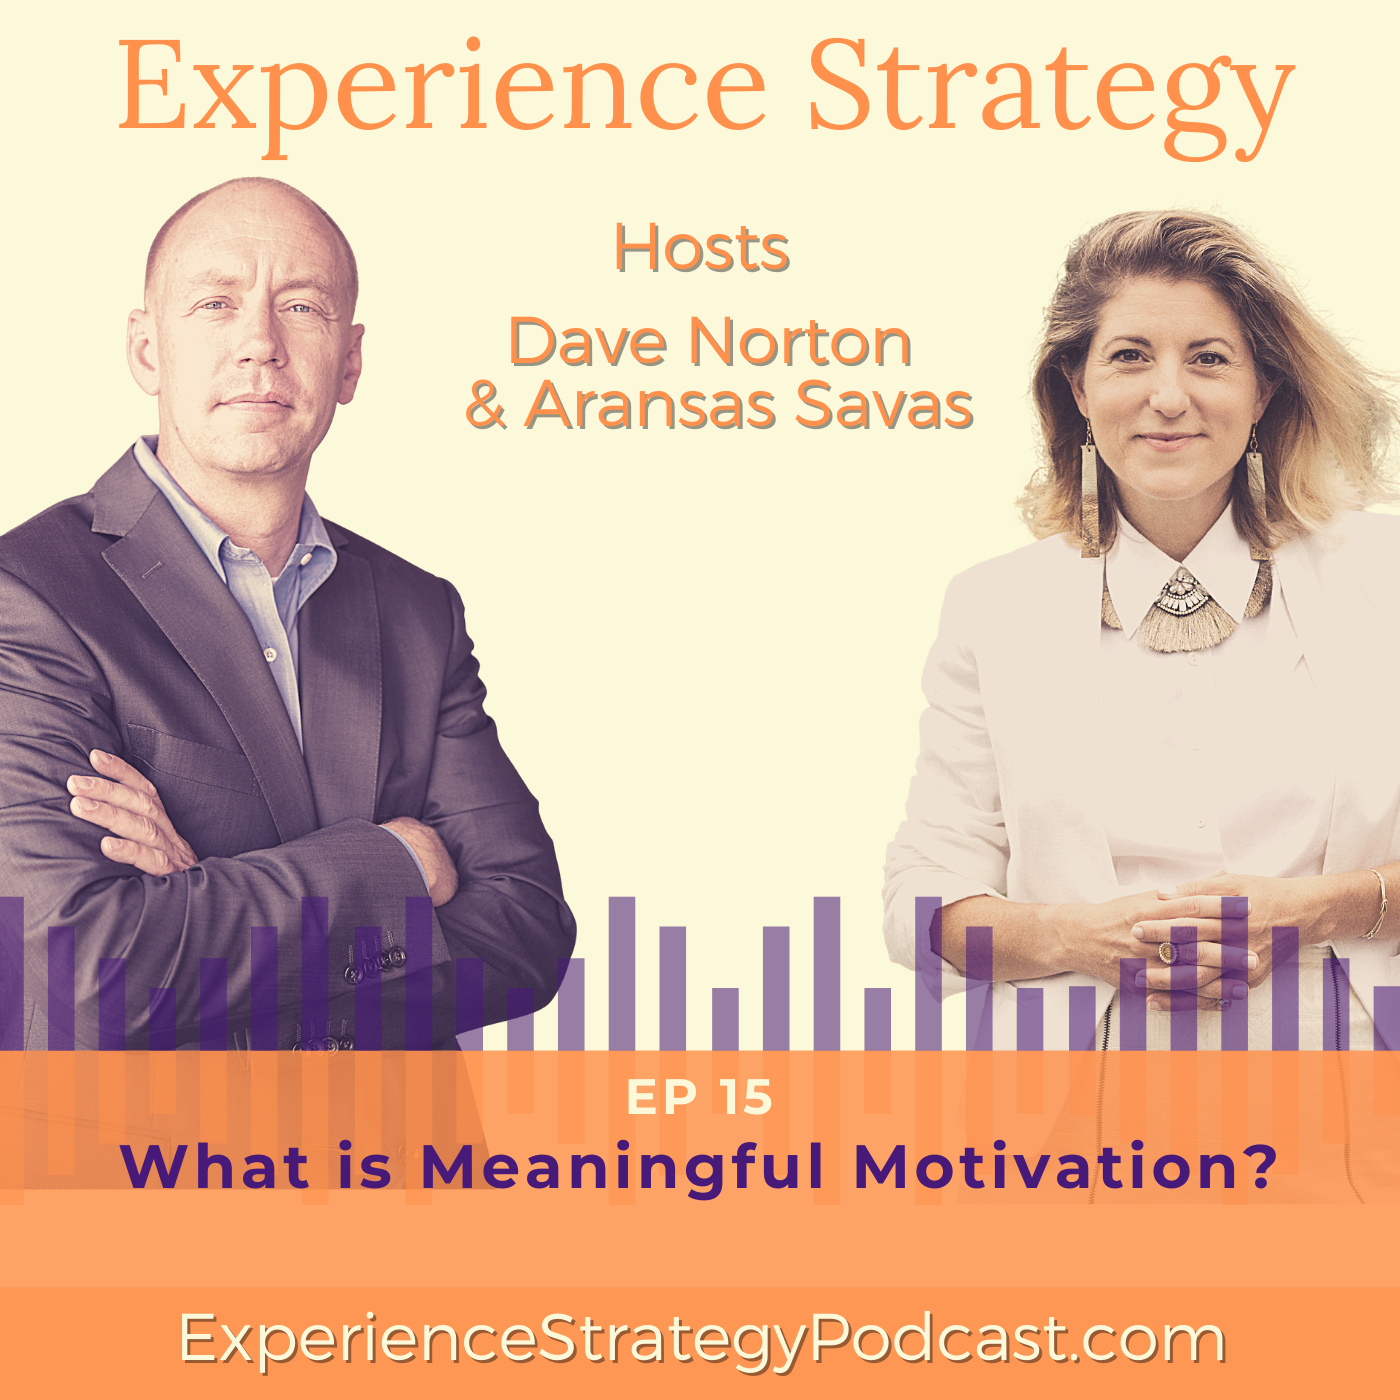 What is Meaningful Motivation?